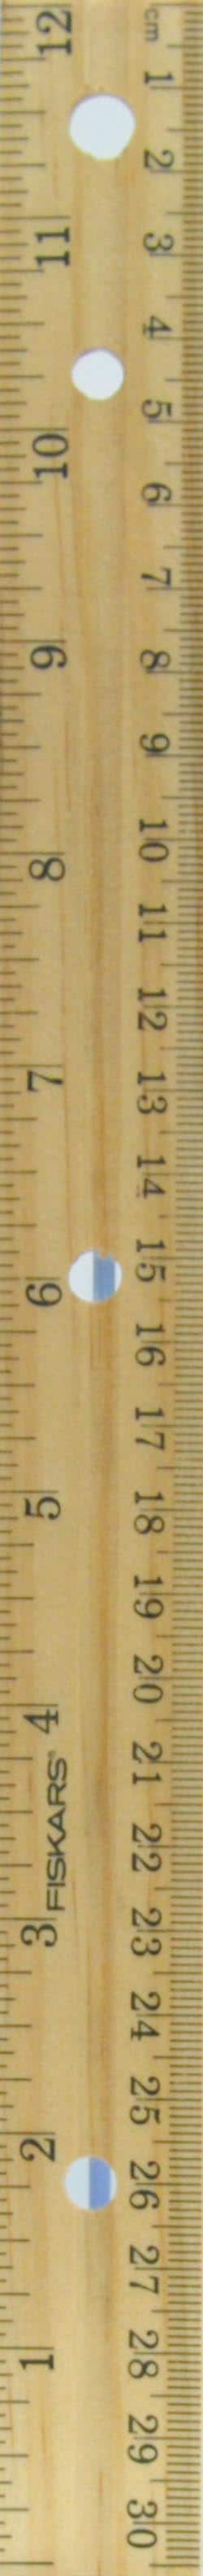 Fiskars wooden ruler at Amazon - $0.47 + FS